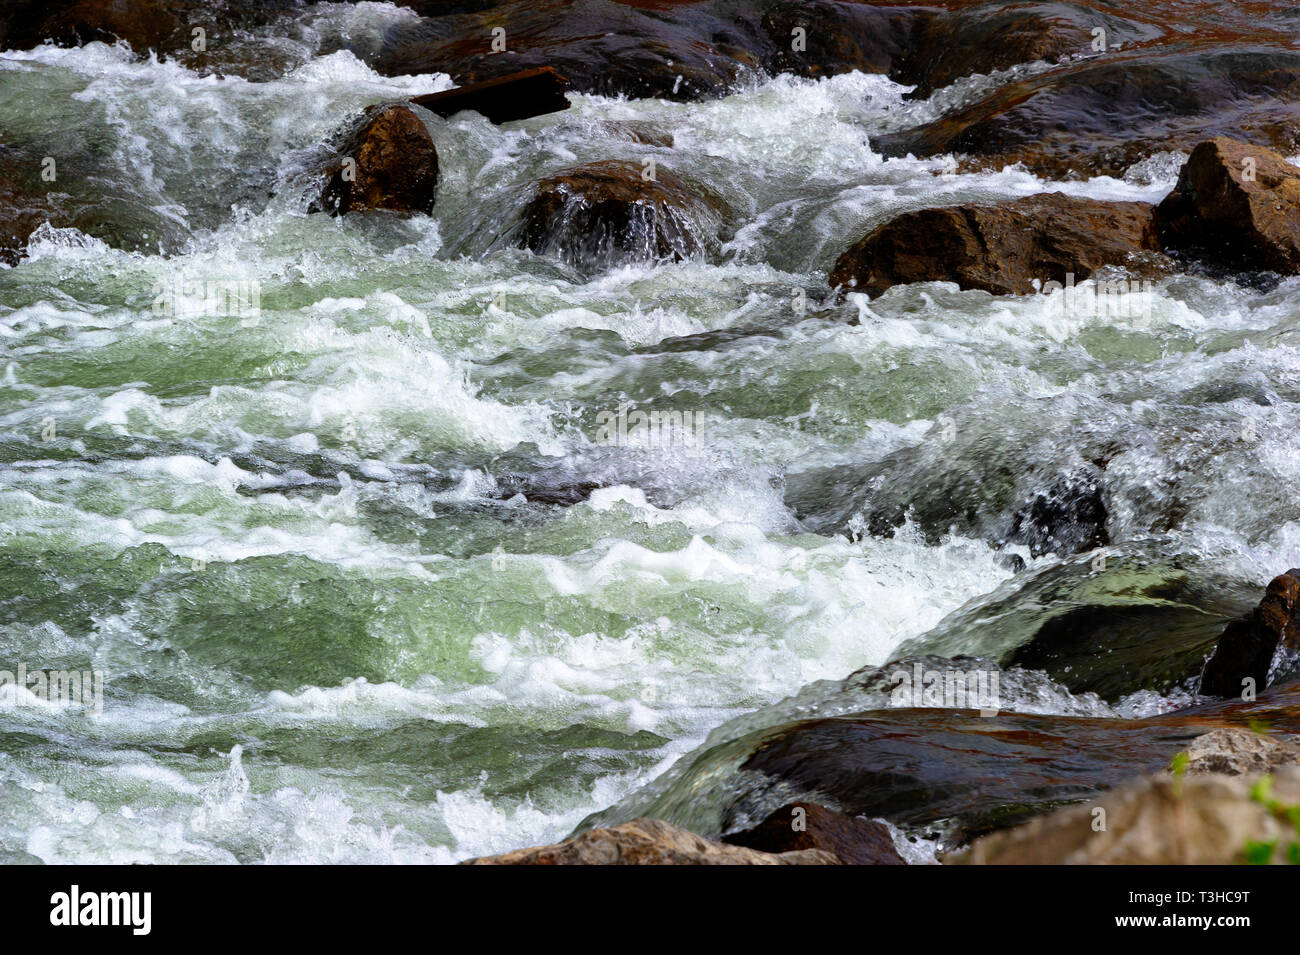 Cascading river water flows over rocks in the river creating rapids. - Stock Image